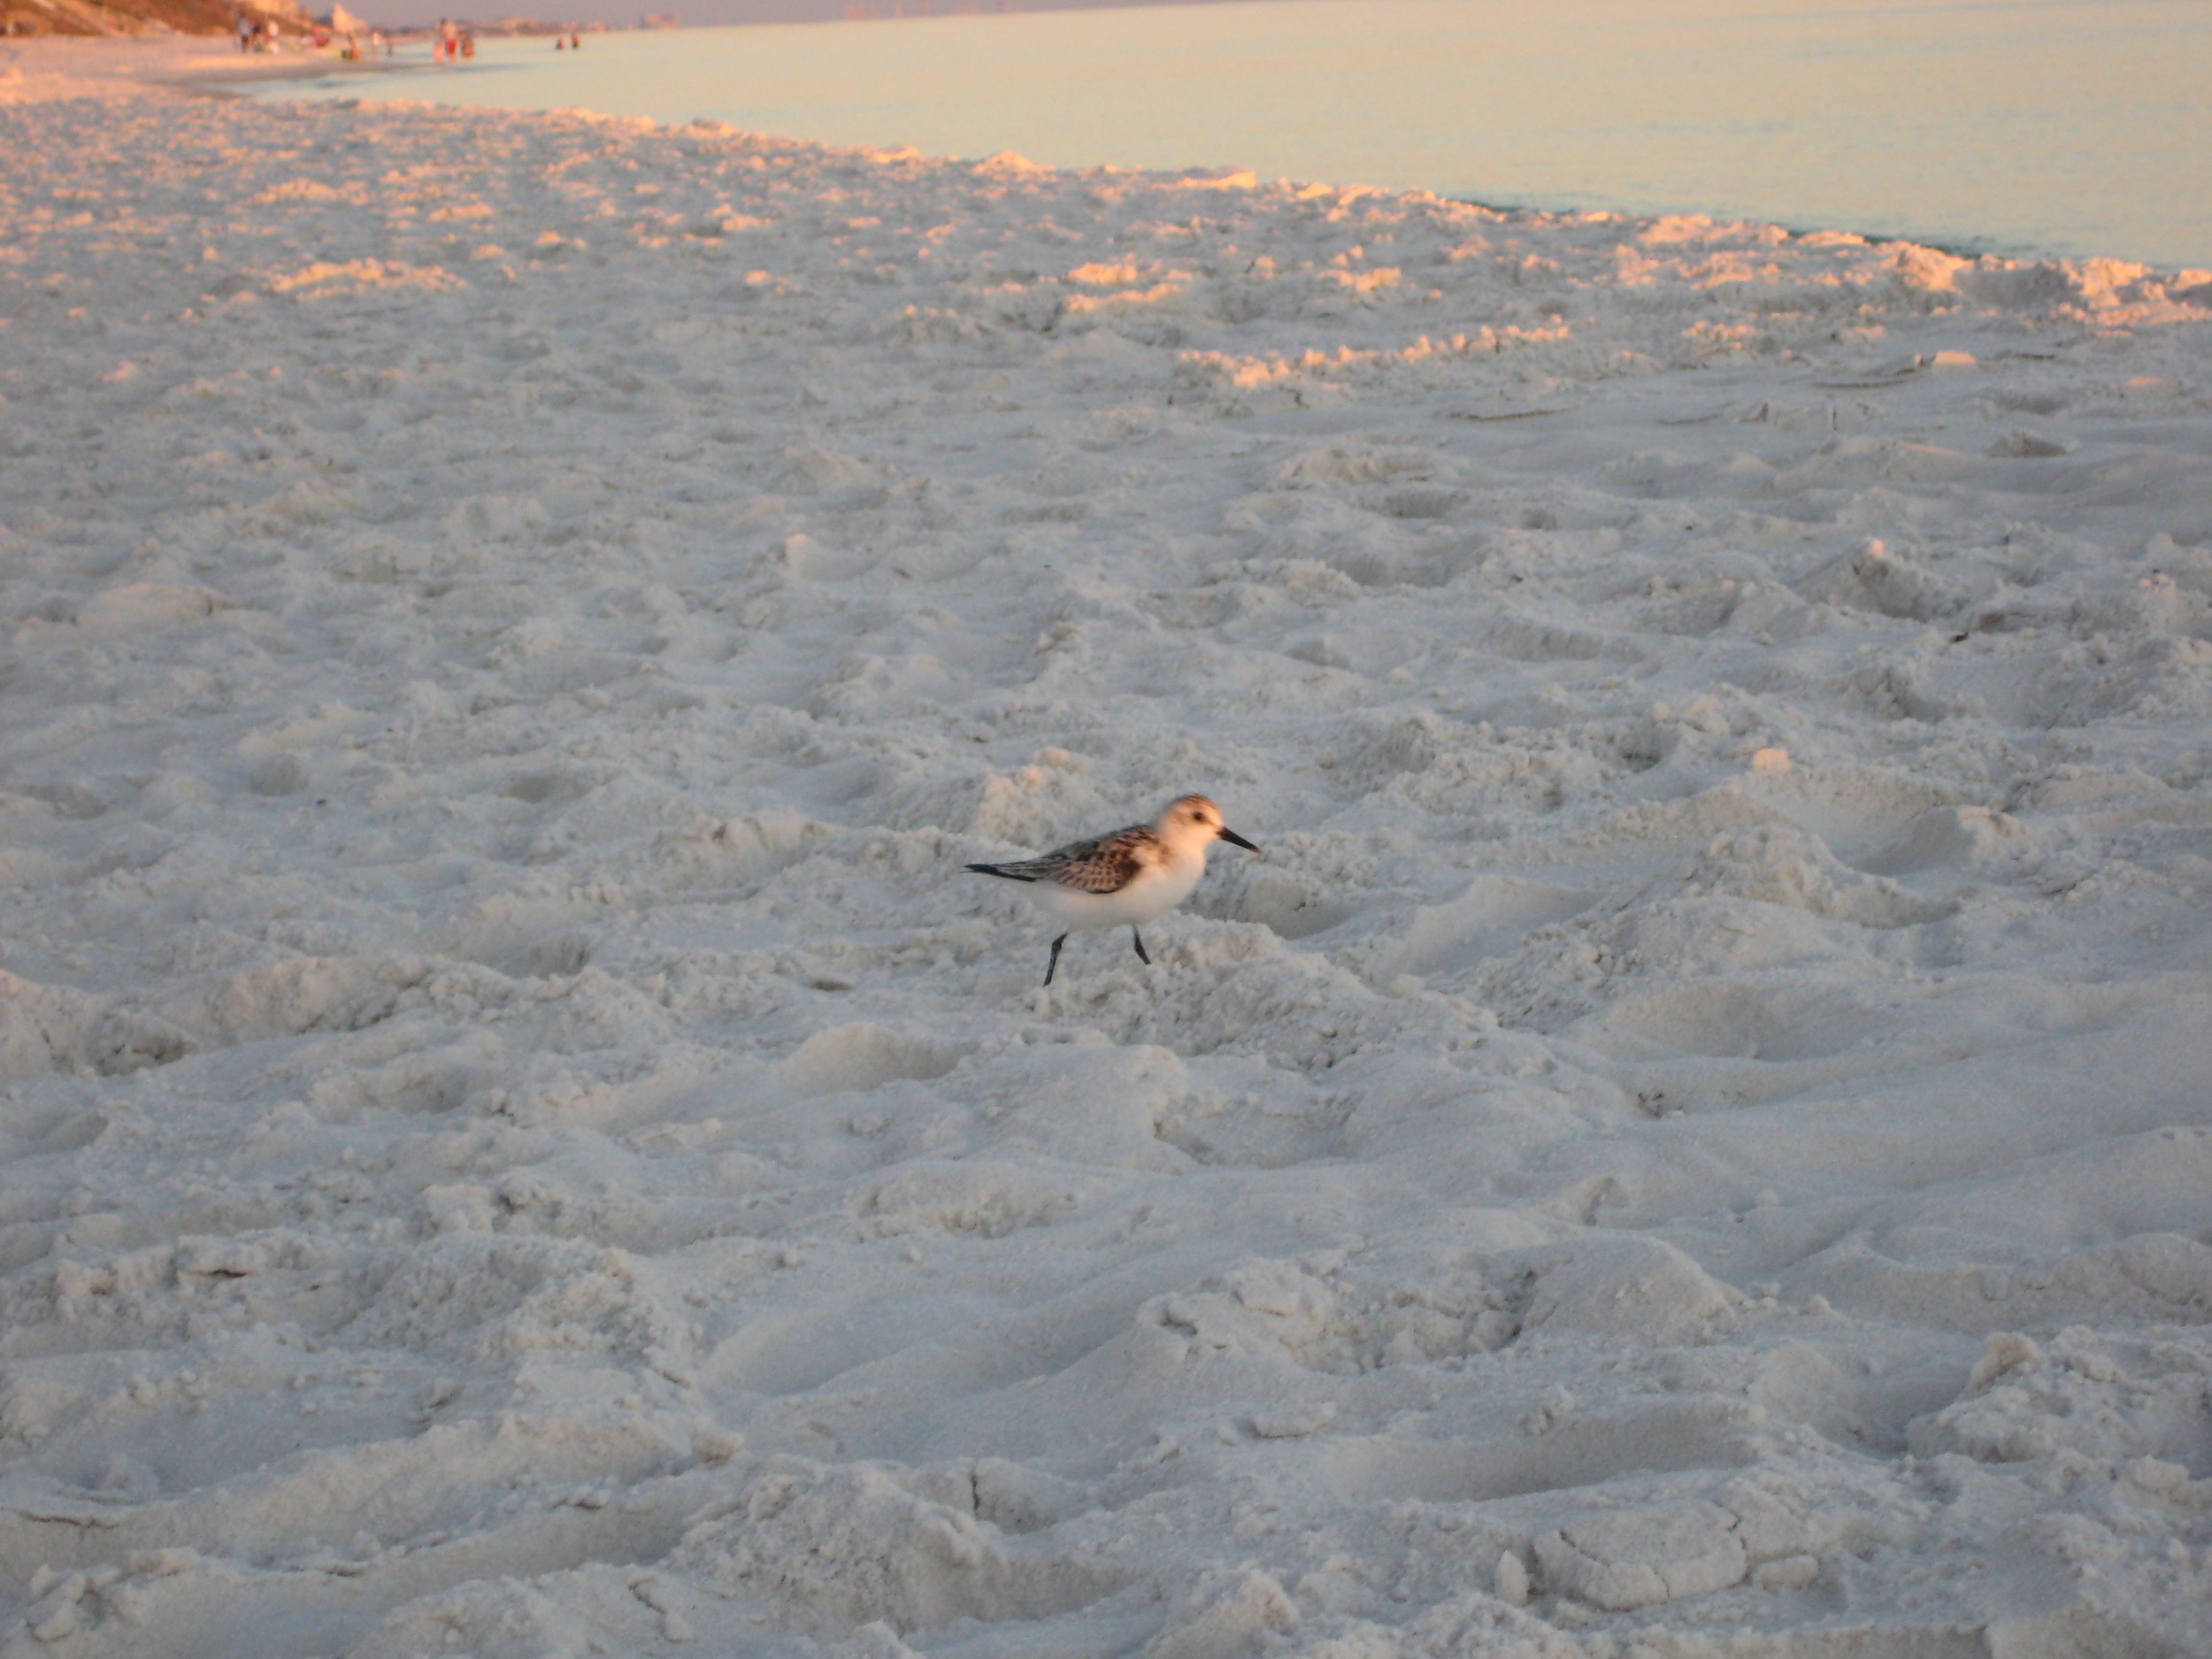 our bird friend who watched the setting sun each night with us